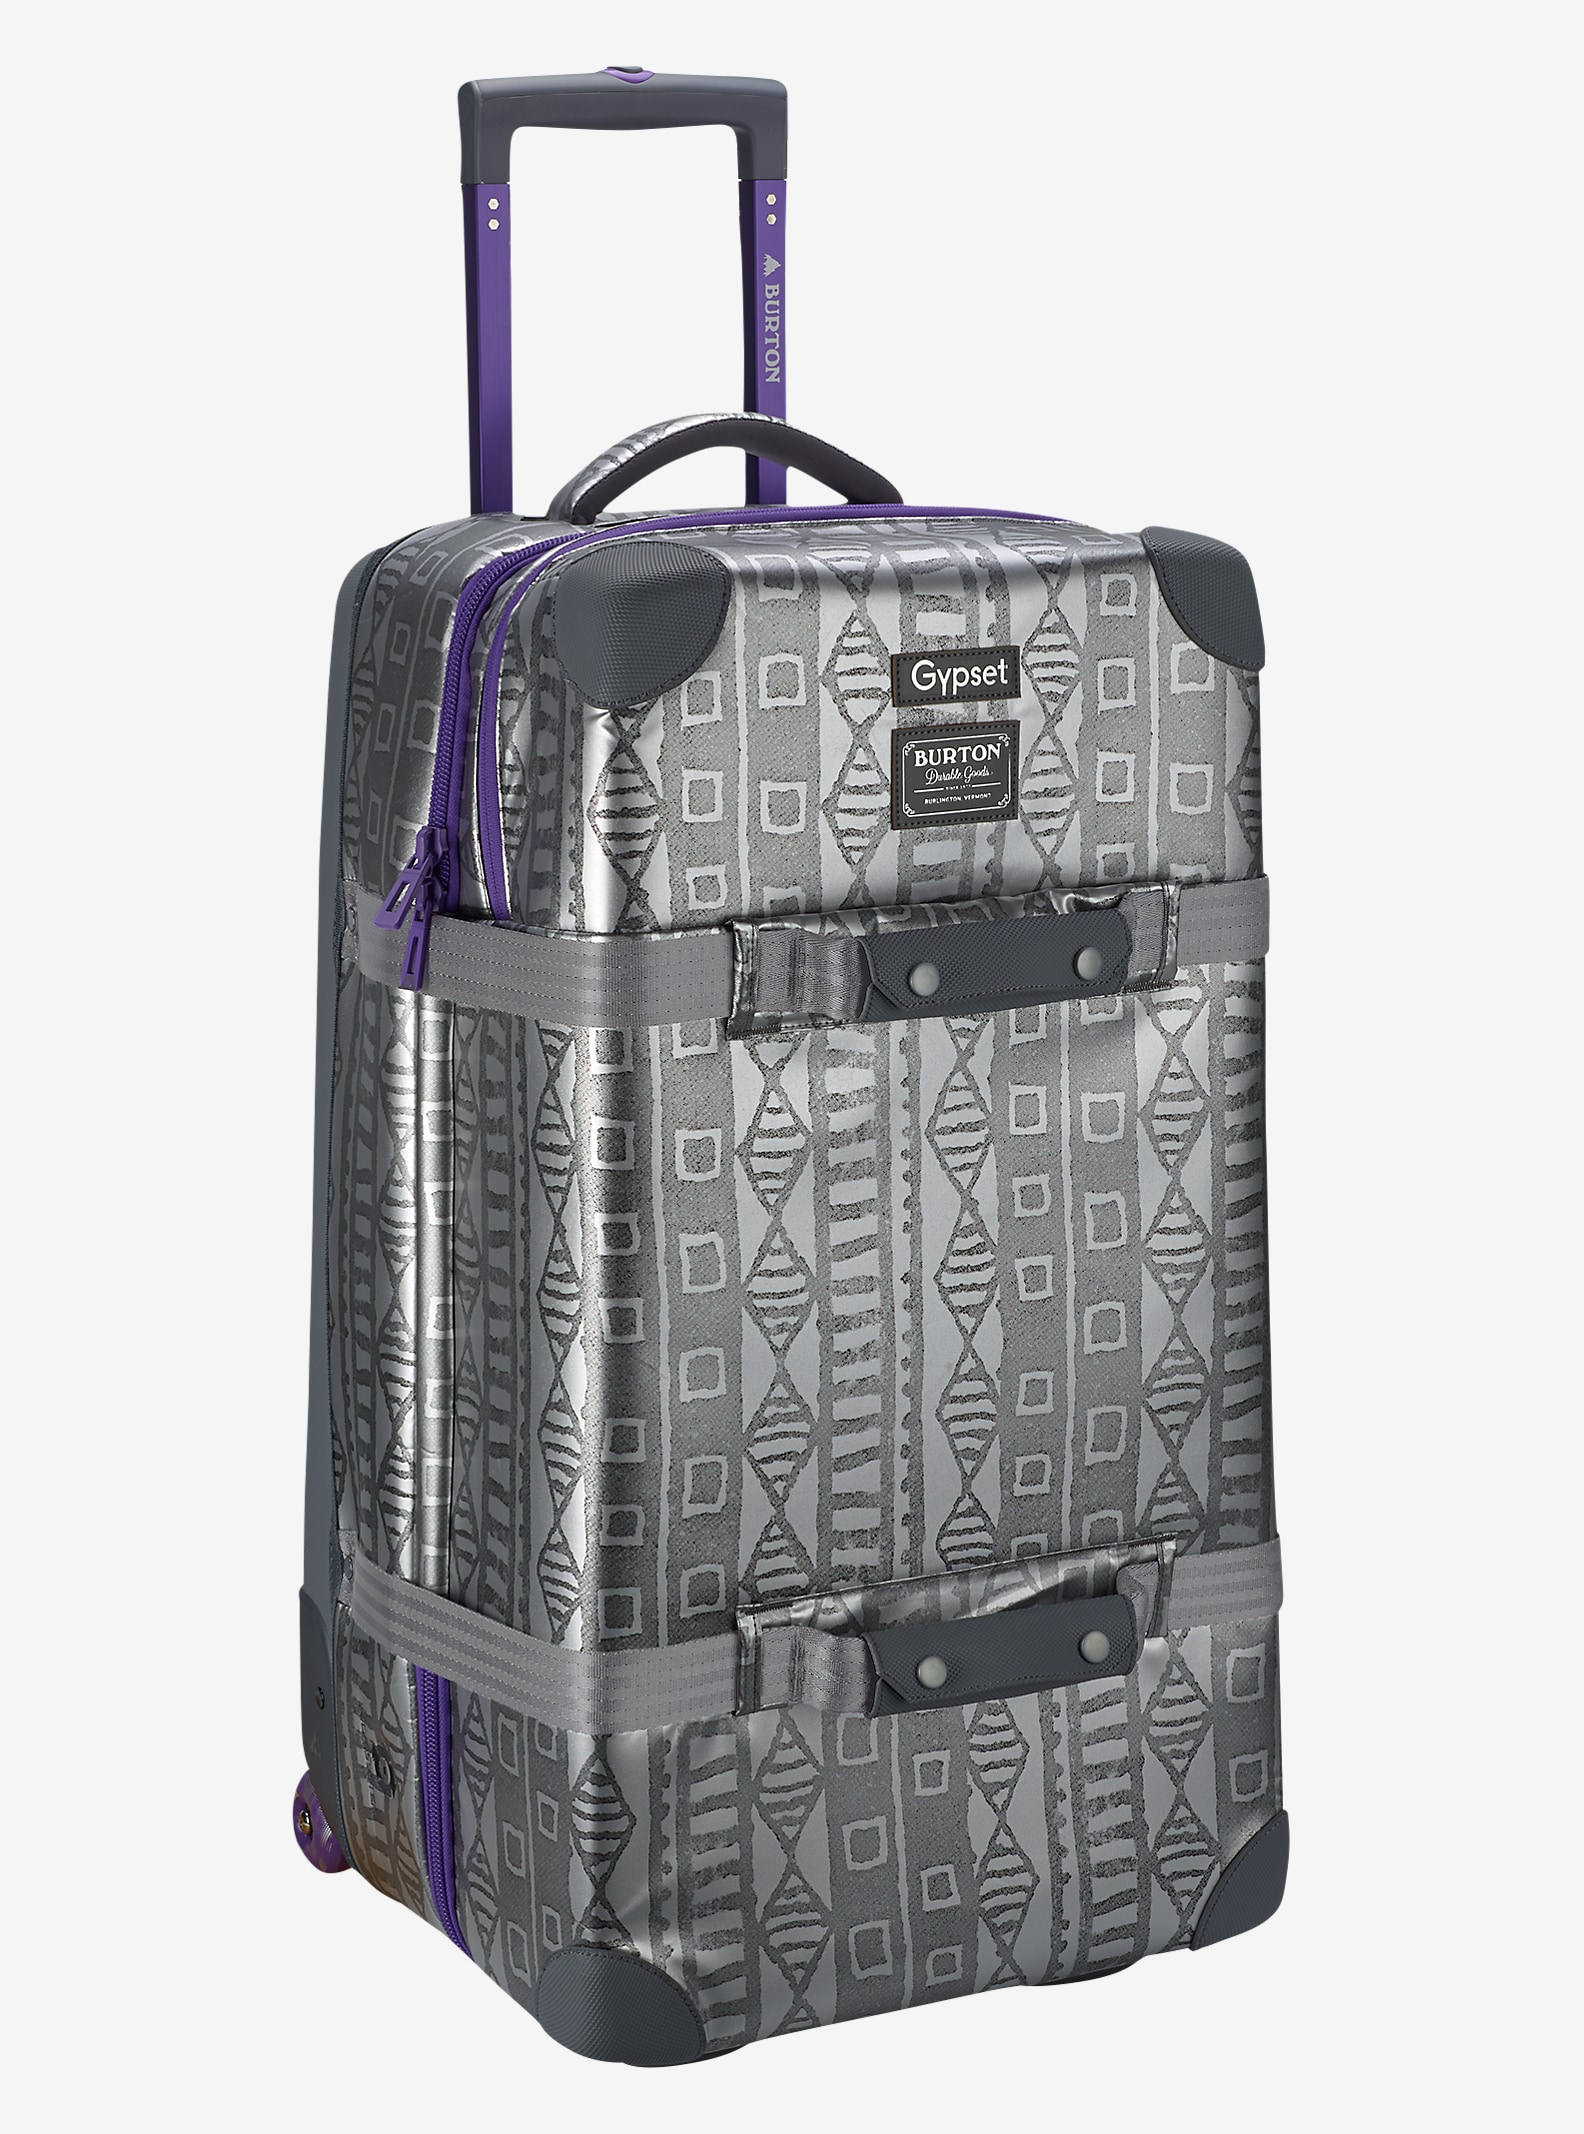 Burton x Gypset Wheelie Double Deck Travel Bag shown in Galactic Mudcloth